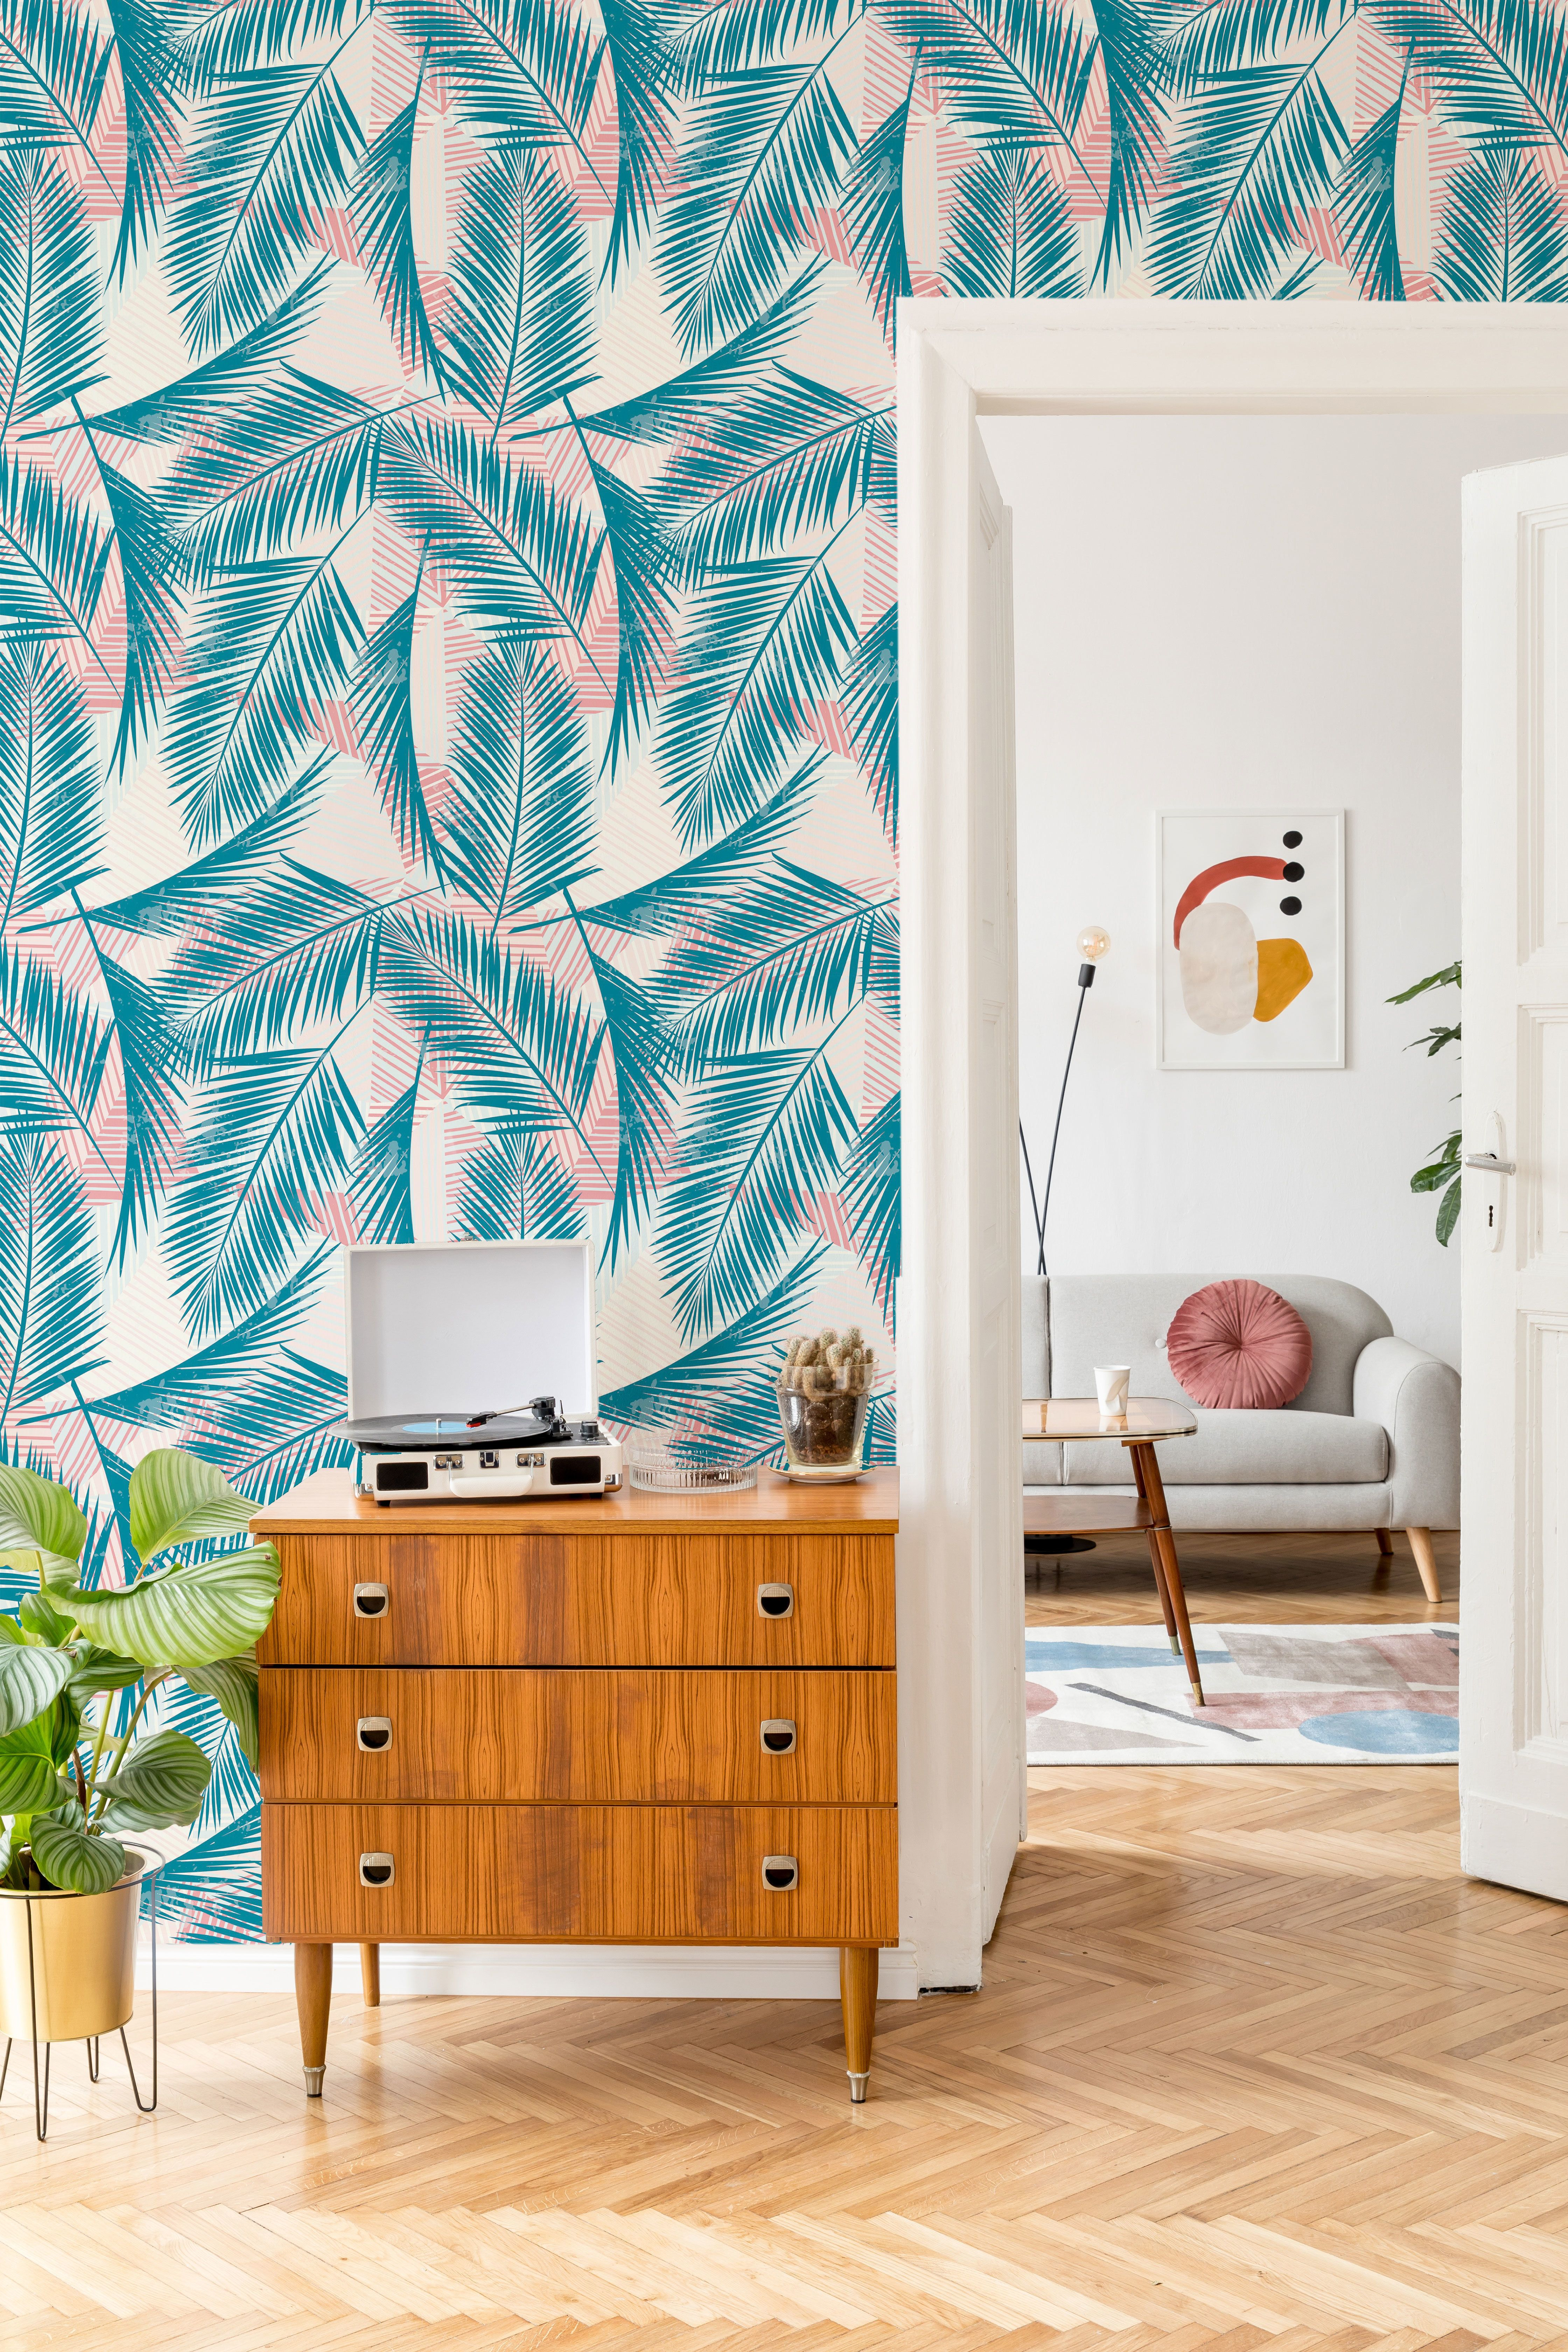 Blue and Red Tropical Floral Fabric Removable Wallpaper 1328